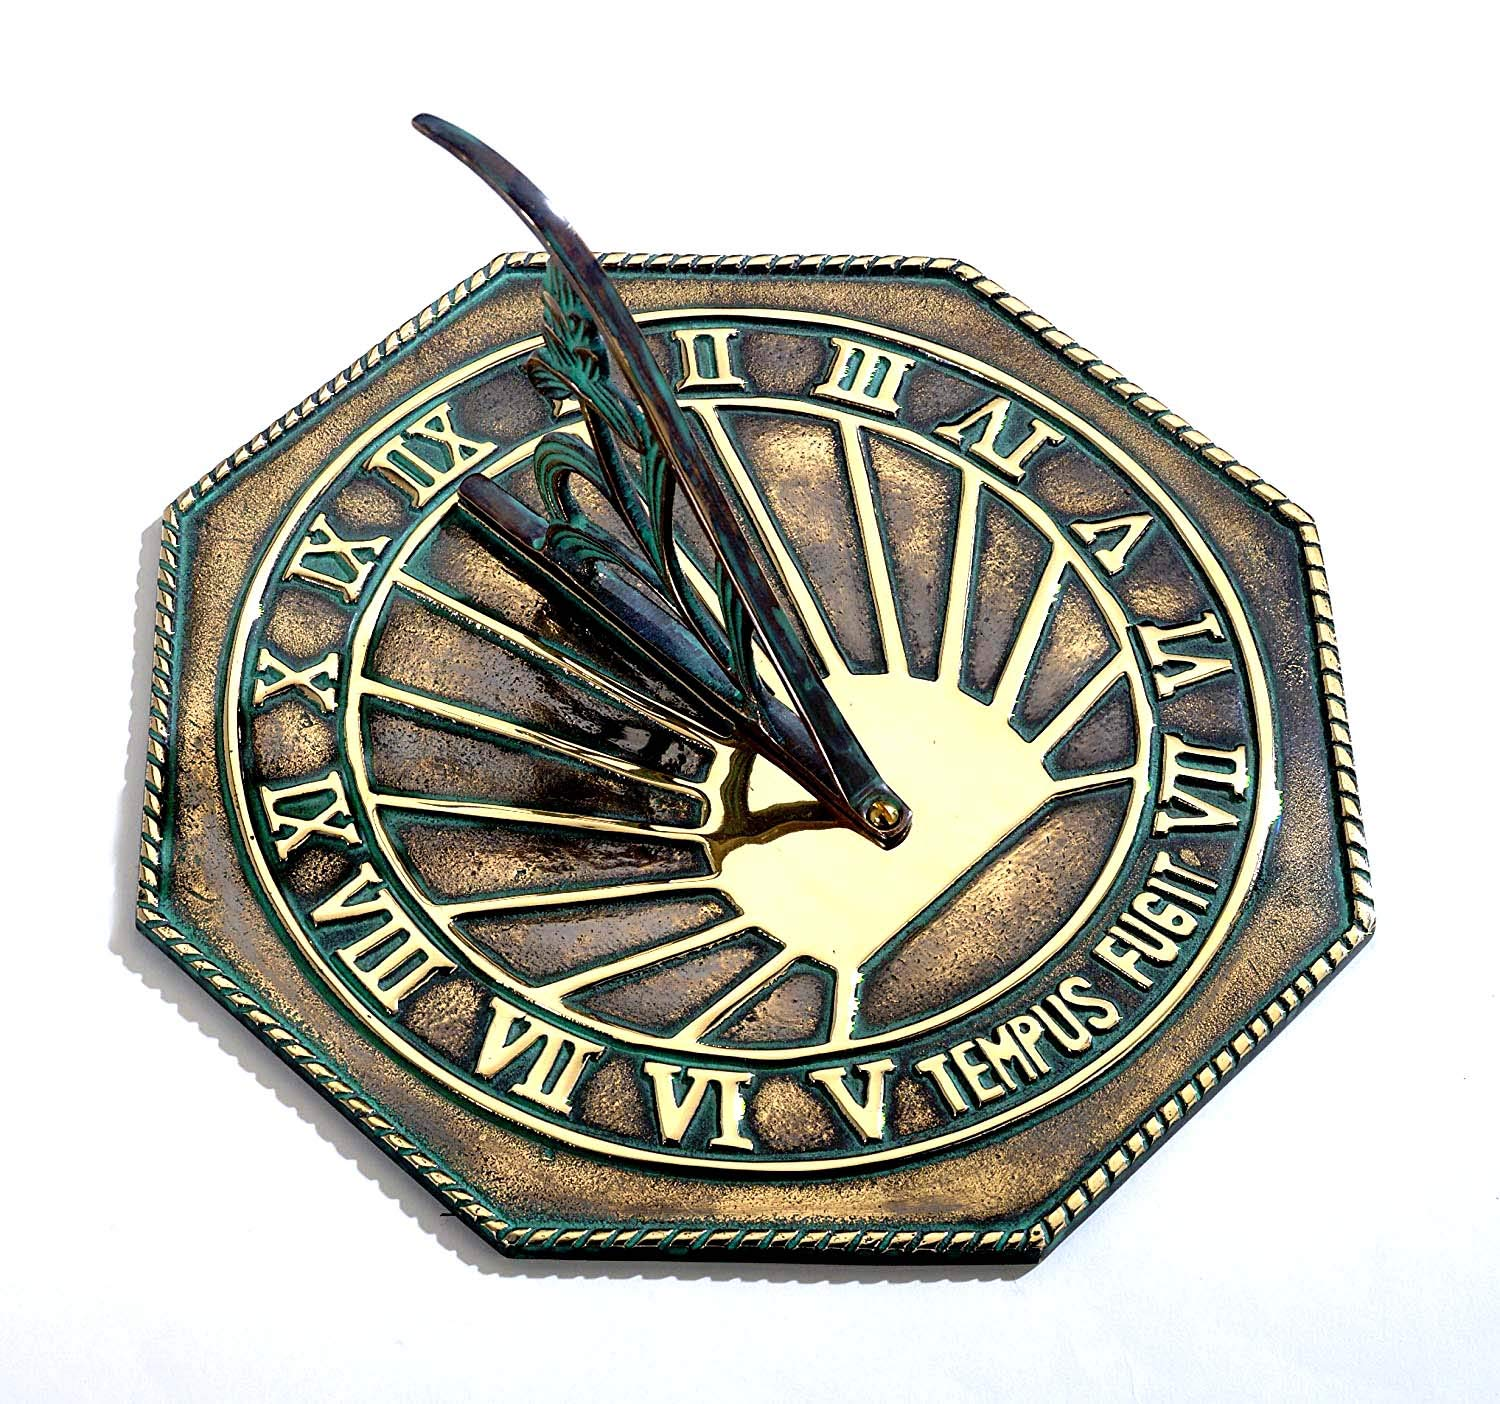 ANTIQUECOLLECTION Solid Antique Brass 'Copernicus' Sundial & Floral Gnomon - 250mm / 10'' Width